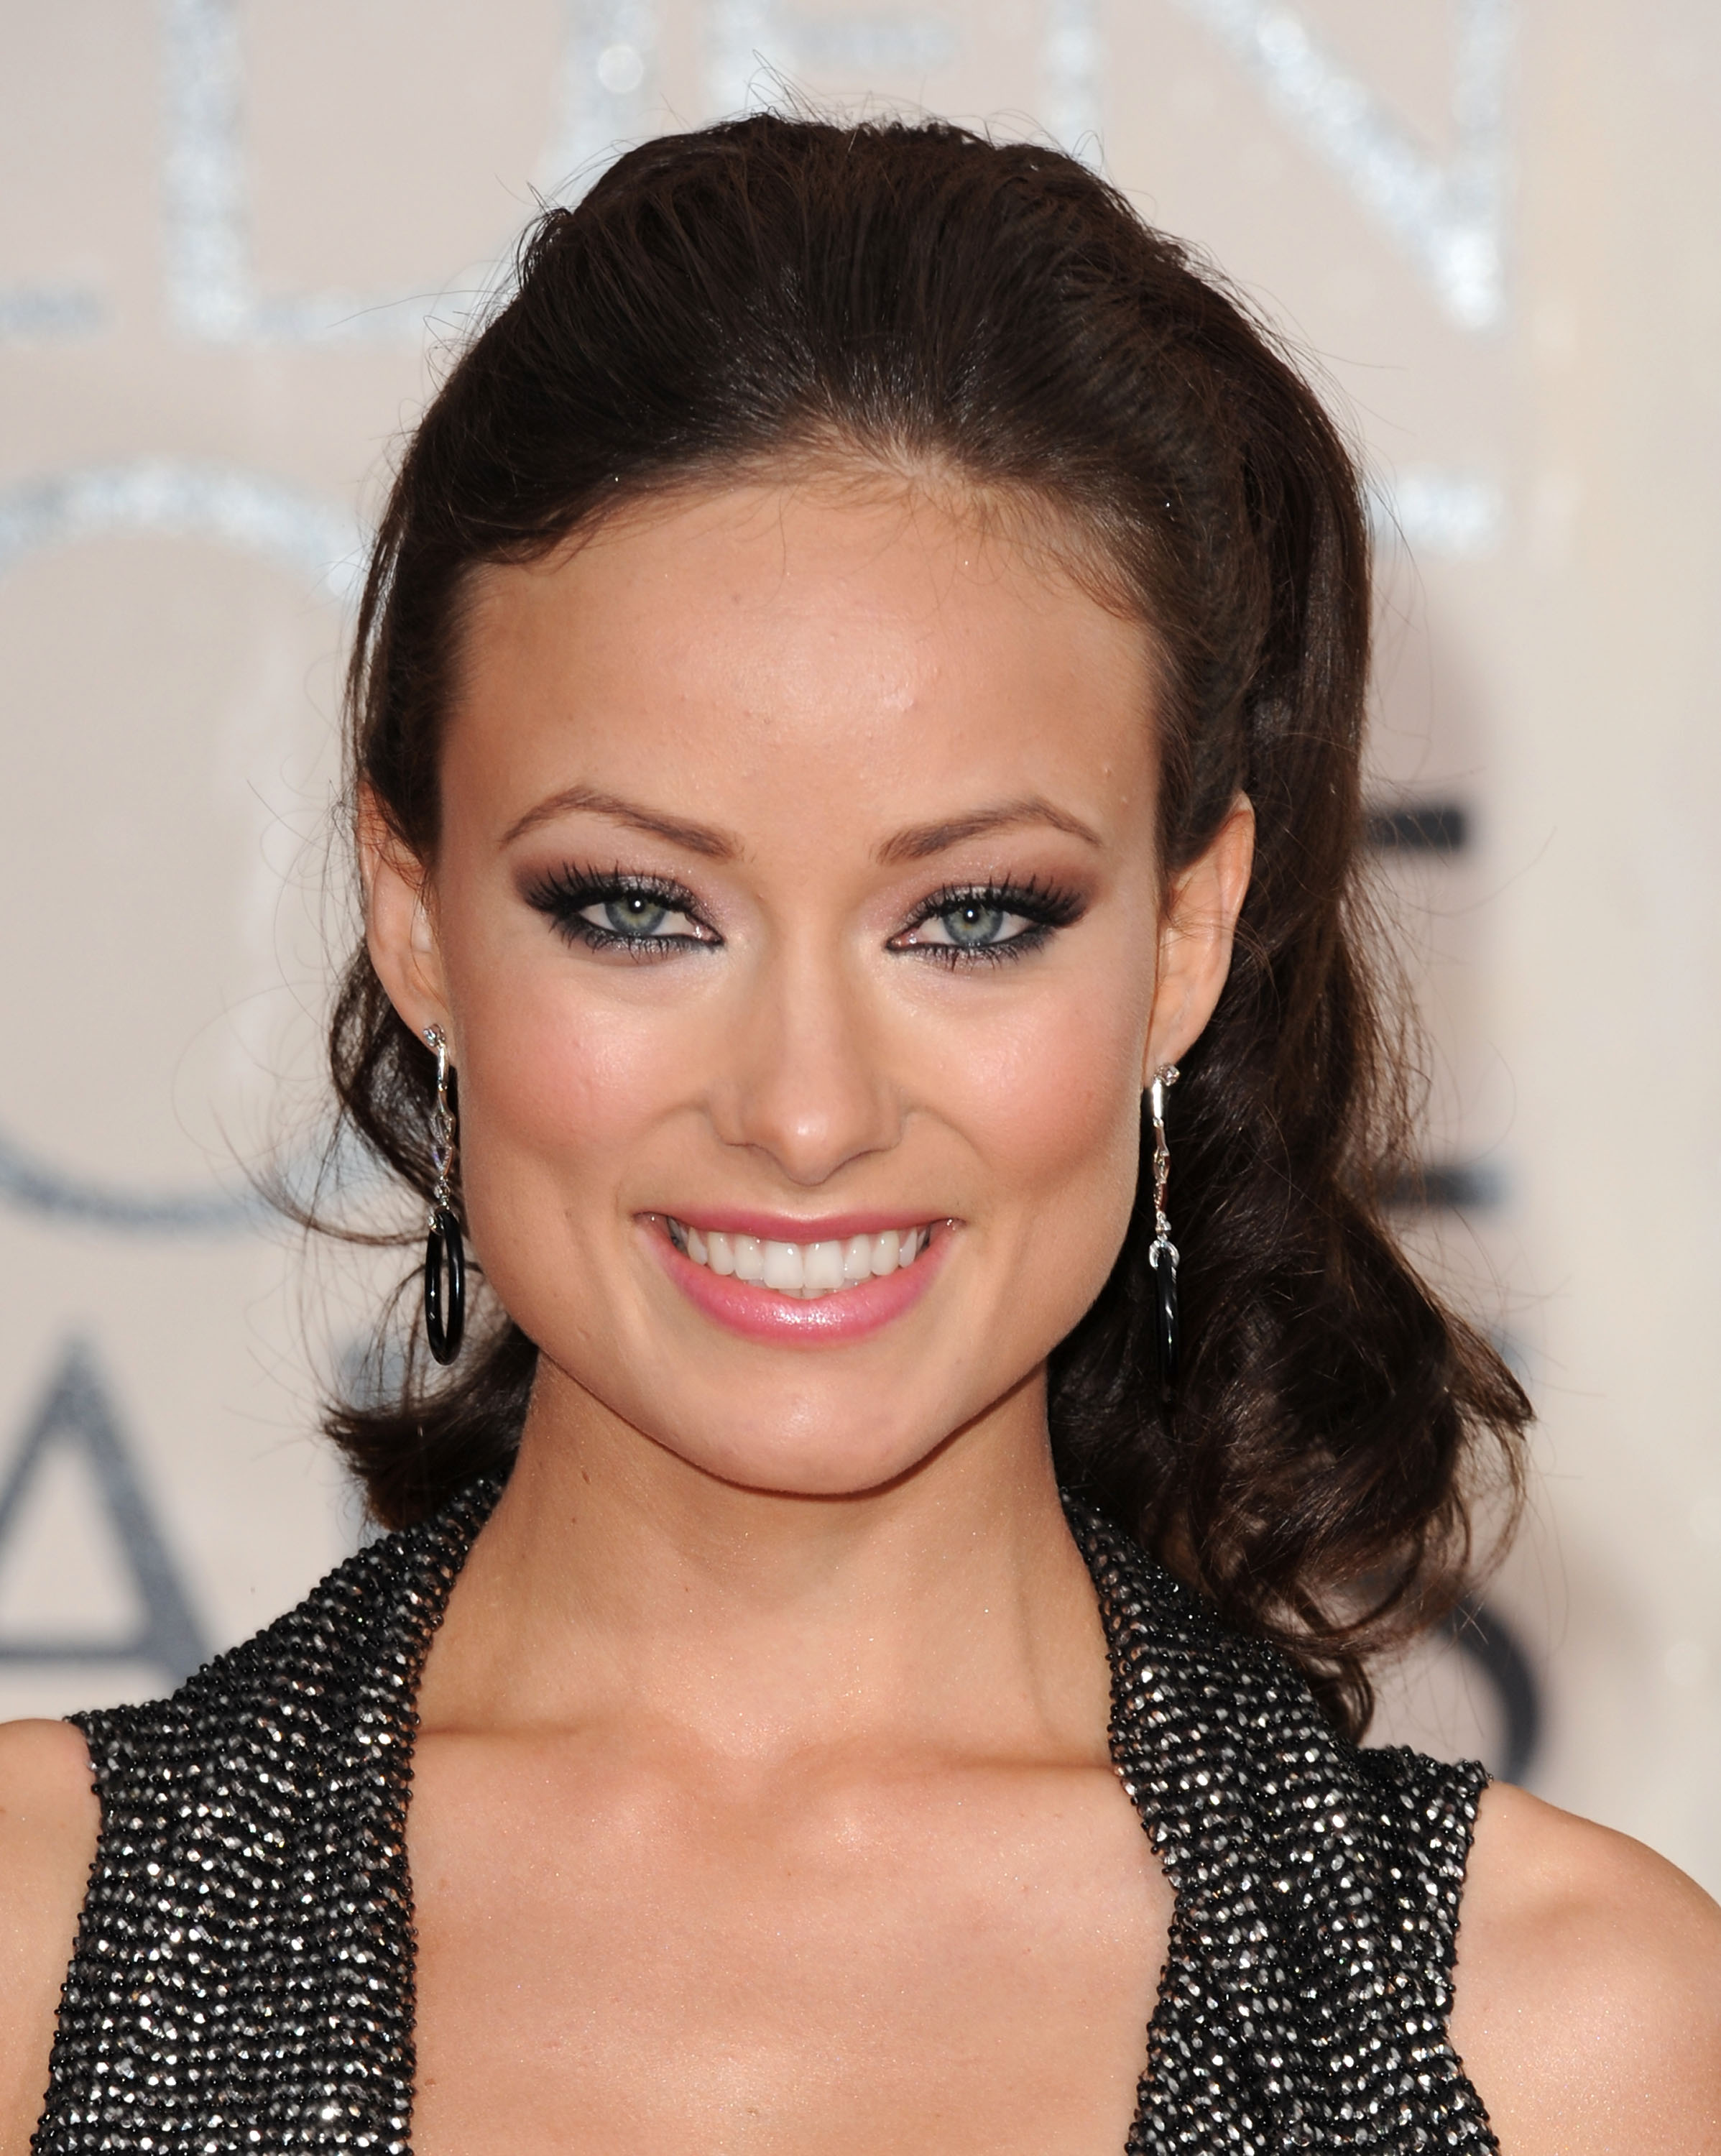 78494_Olivia_Wilde_arrives_at_the_67th_Annual_Golden_Globe_Awards-9_122_235lo.jpg